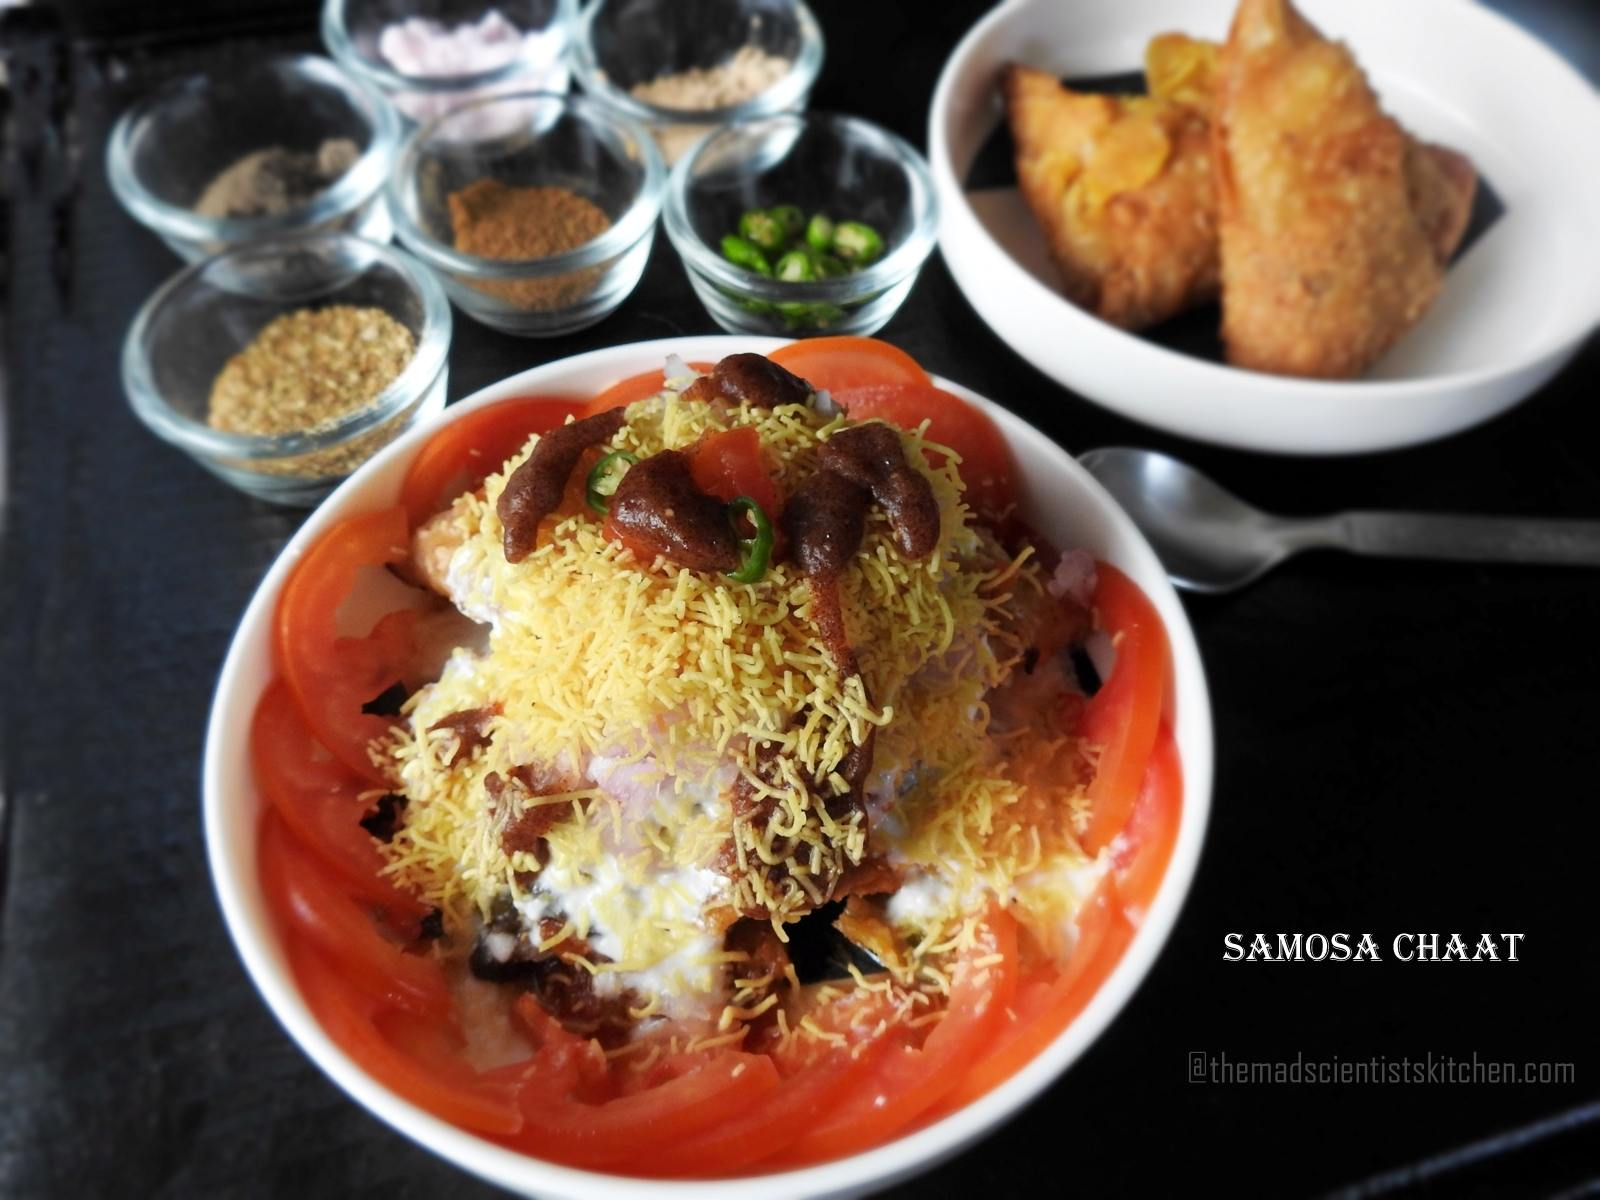 Samosa Chaat, Street food